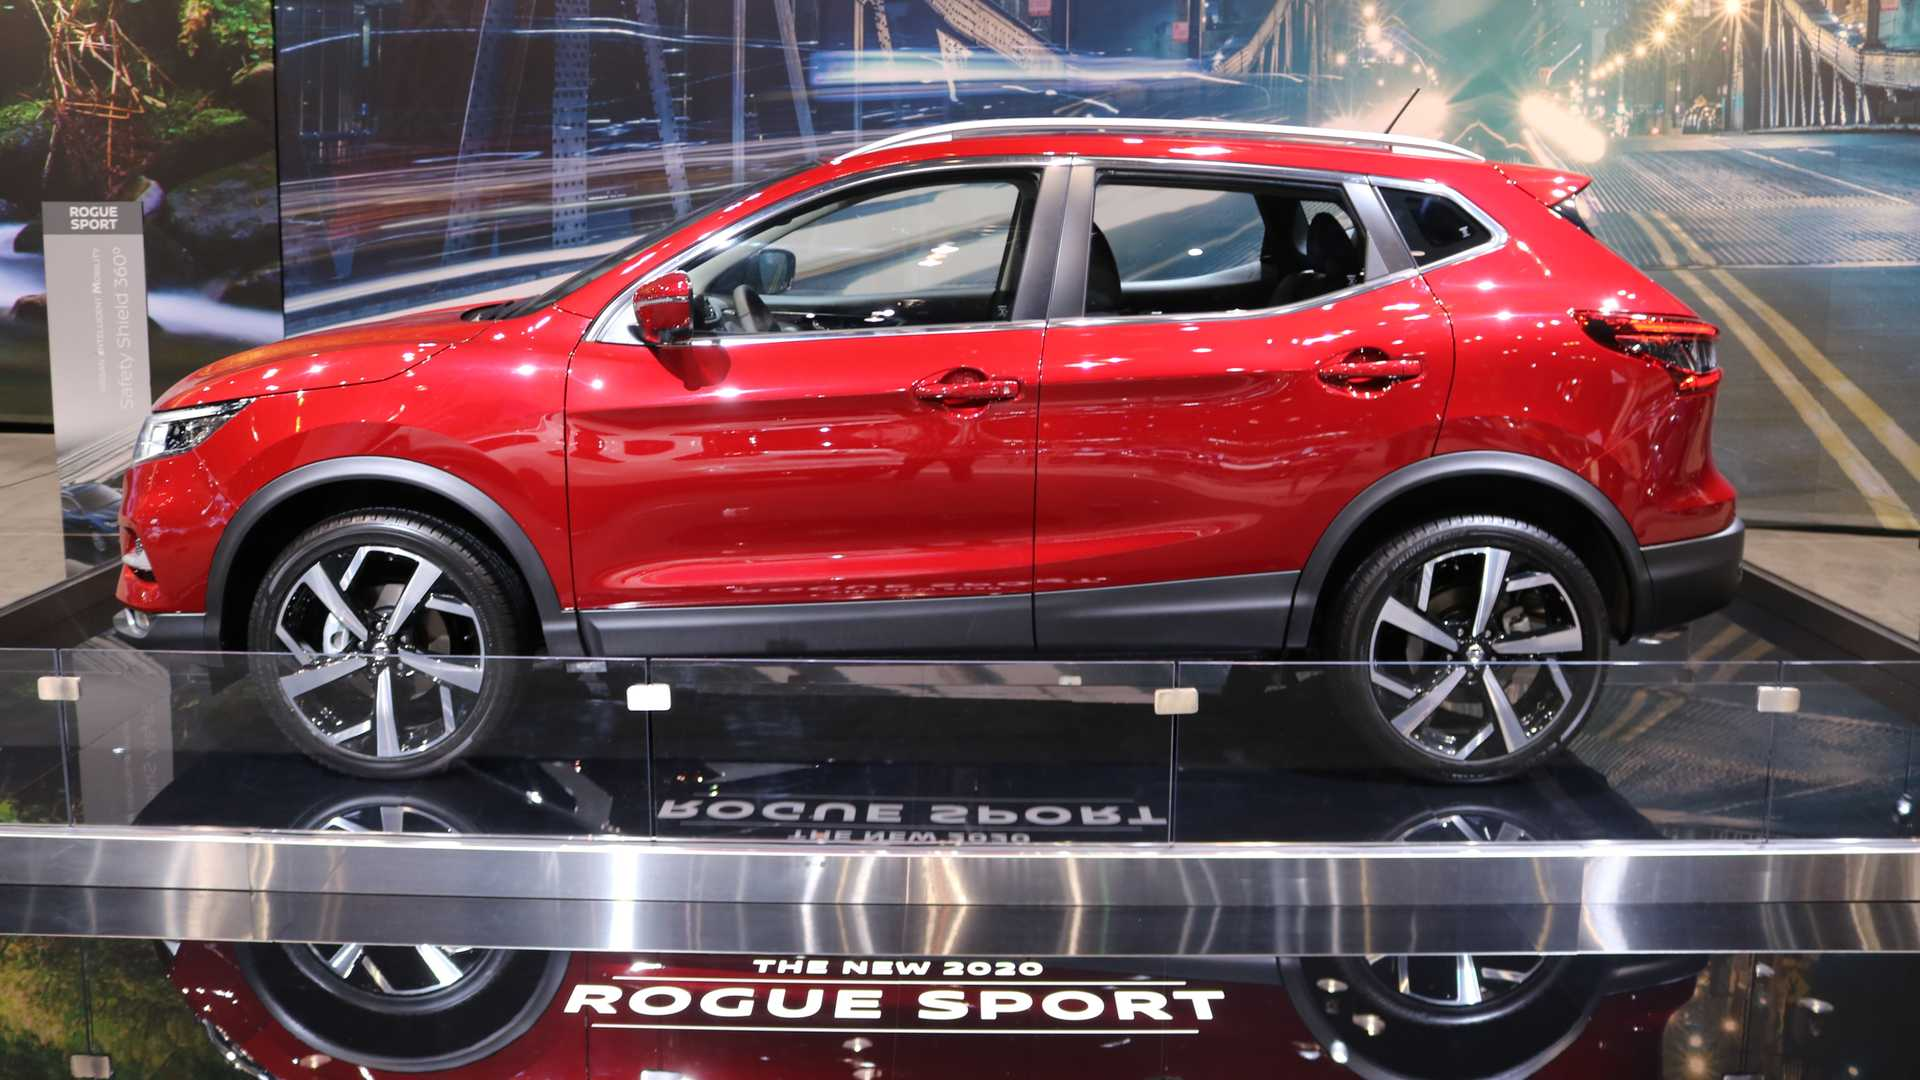 92 The Best 2020 Nissan Rogue Price And Release Date